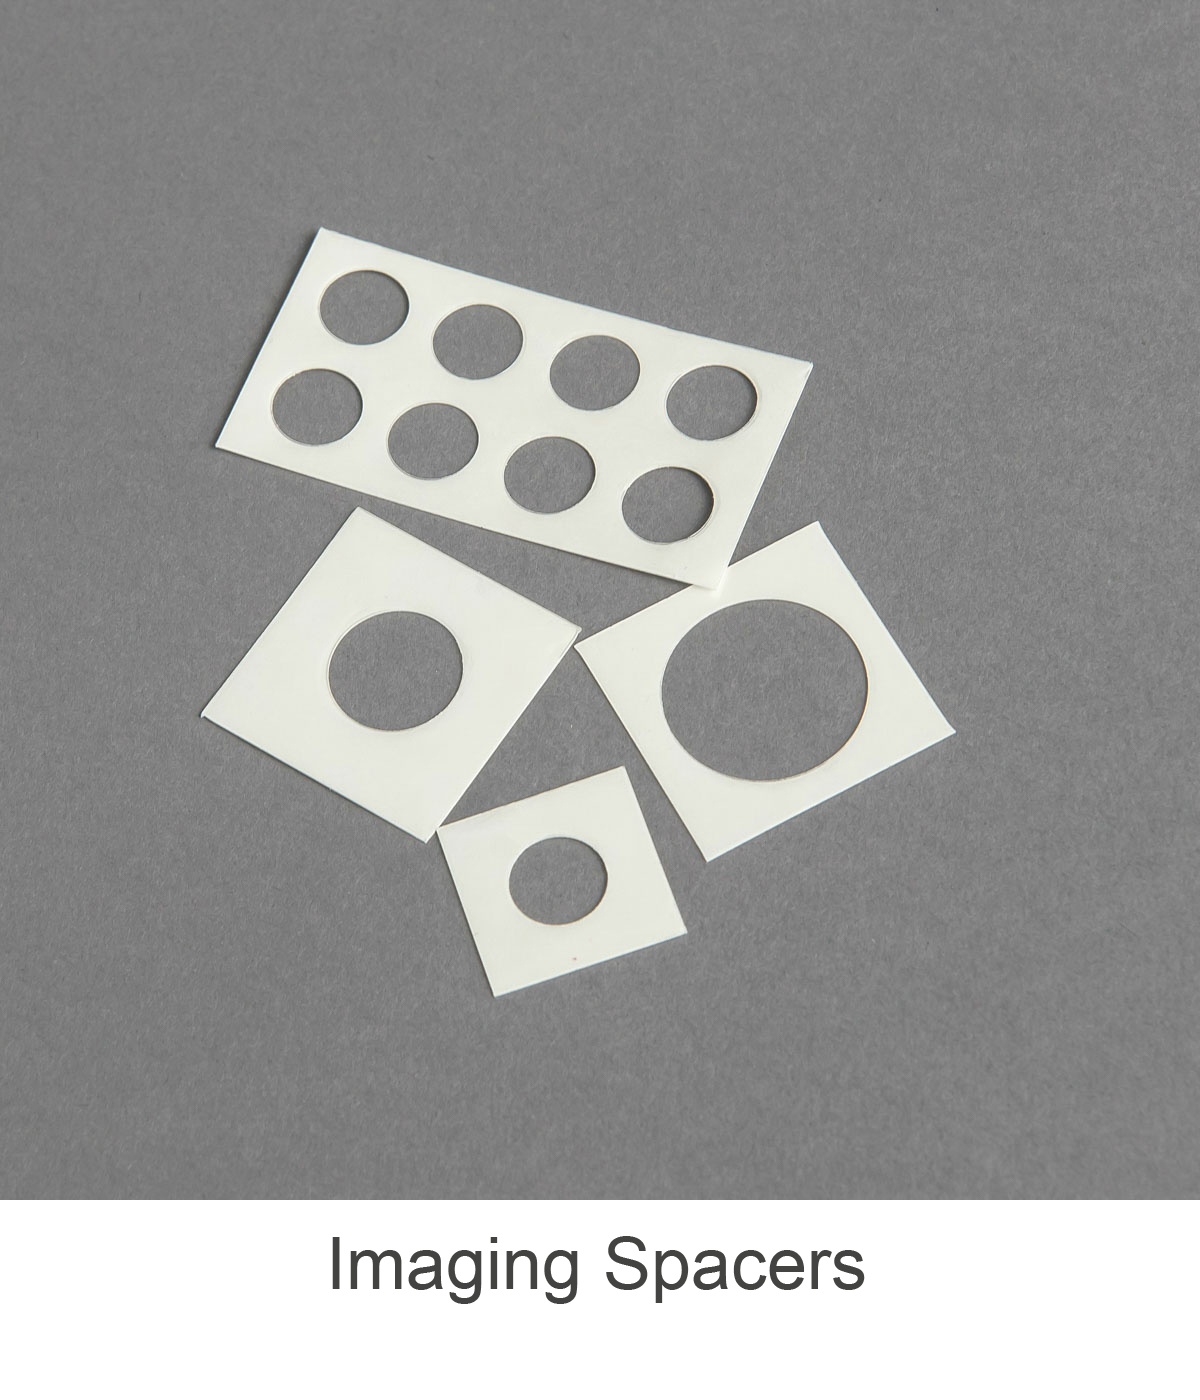 Imaging Spacers